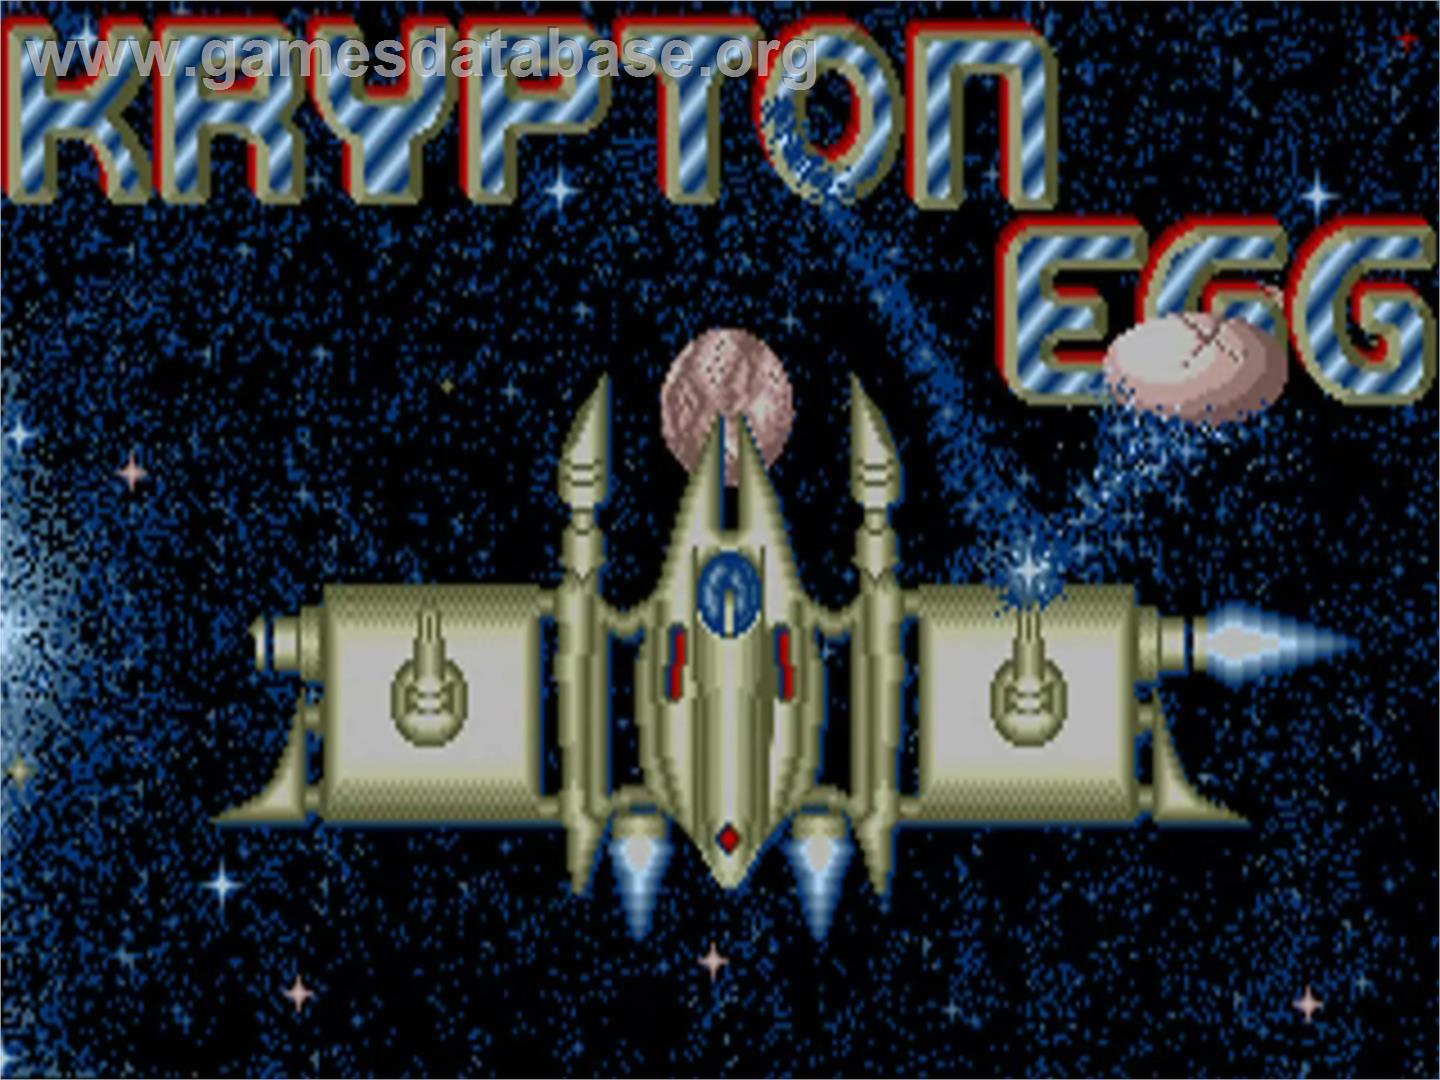 Krypton Egg - Commodore Amiga - Artwork - Title Screen